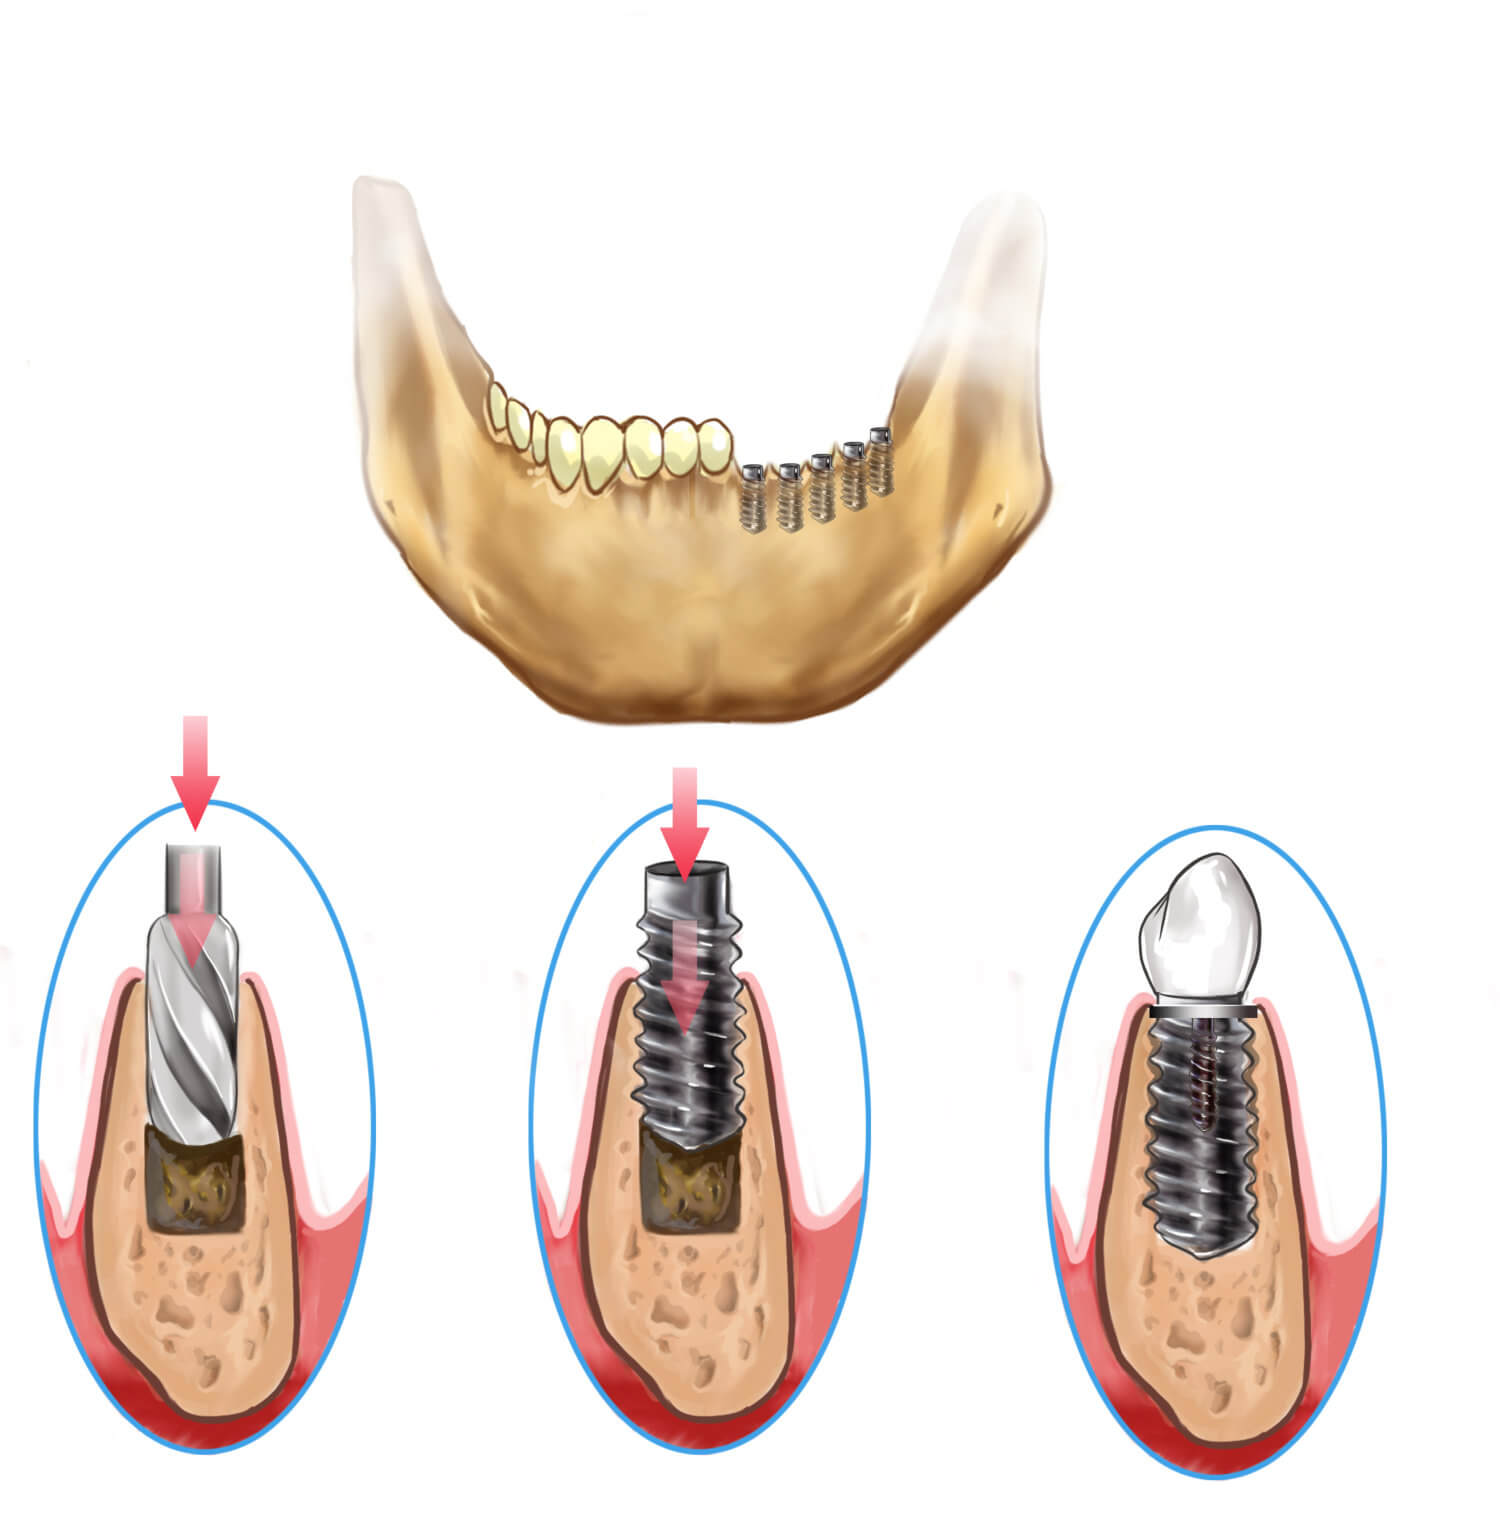 Brickell Dental Associates dental implants